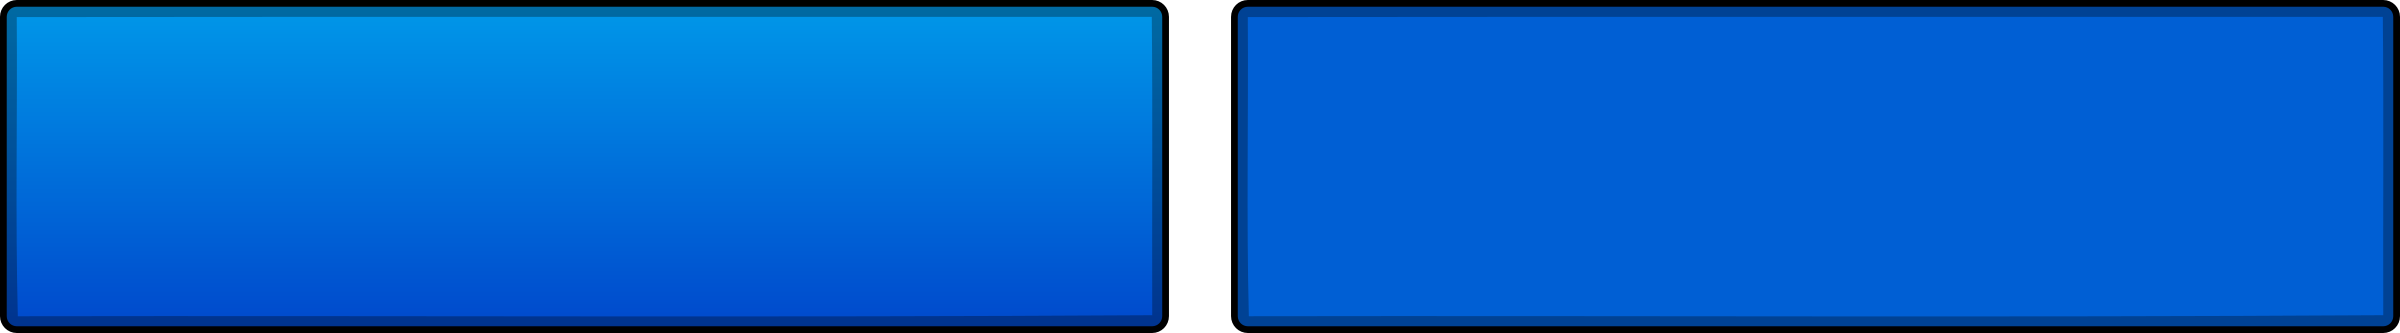 Blue Interface Buttons by asdfturtle